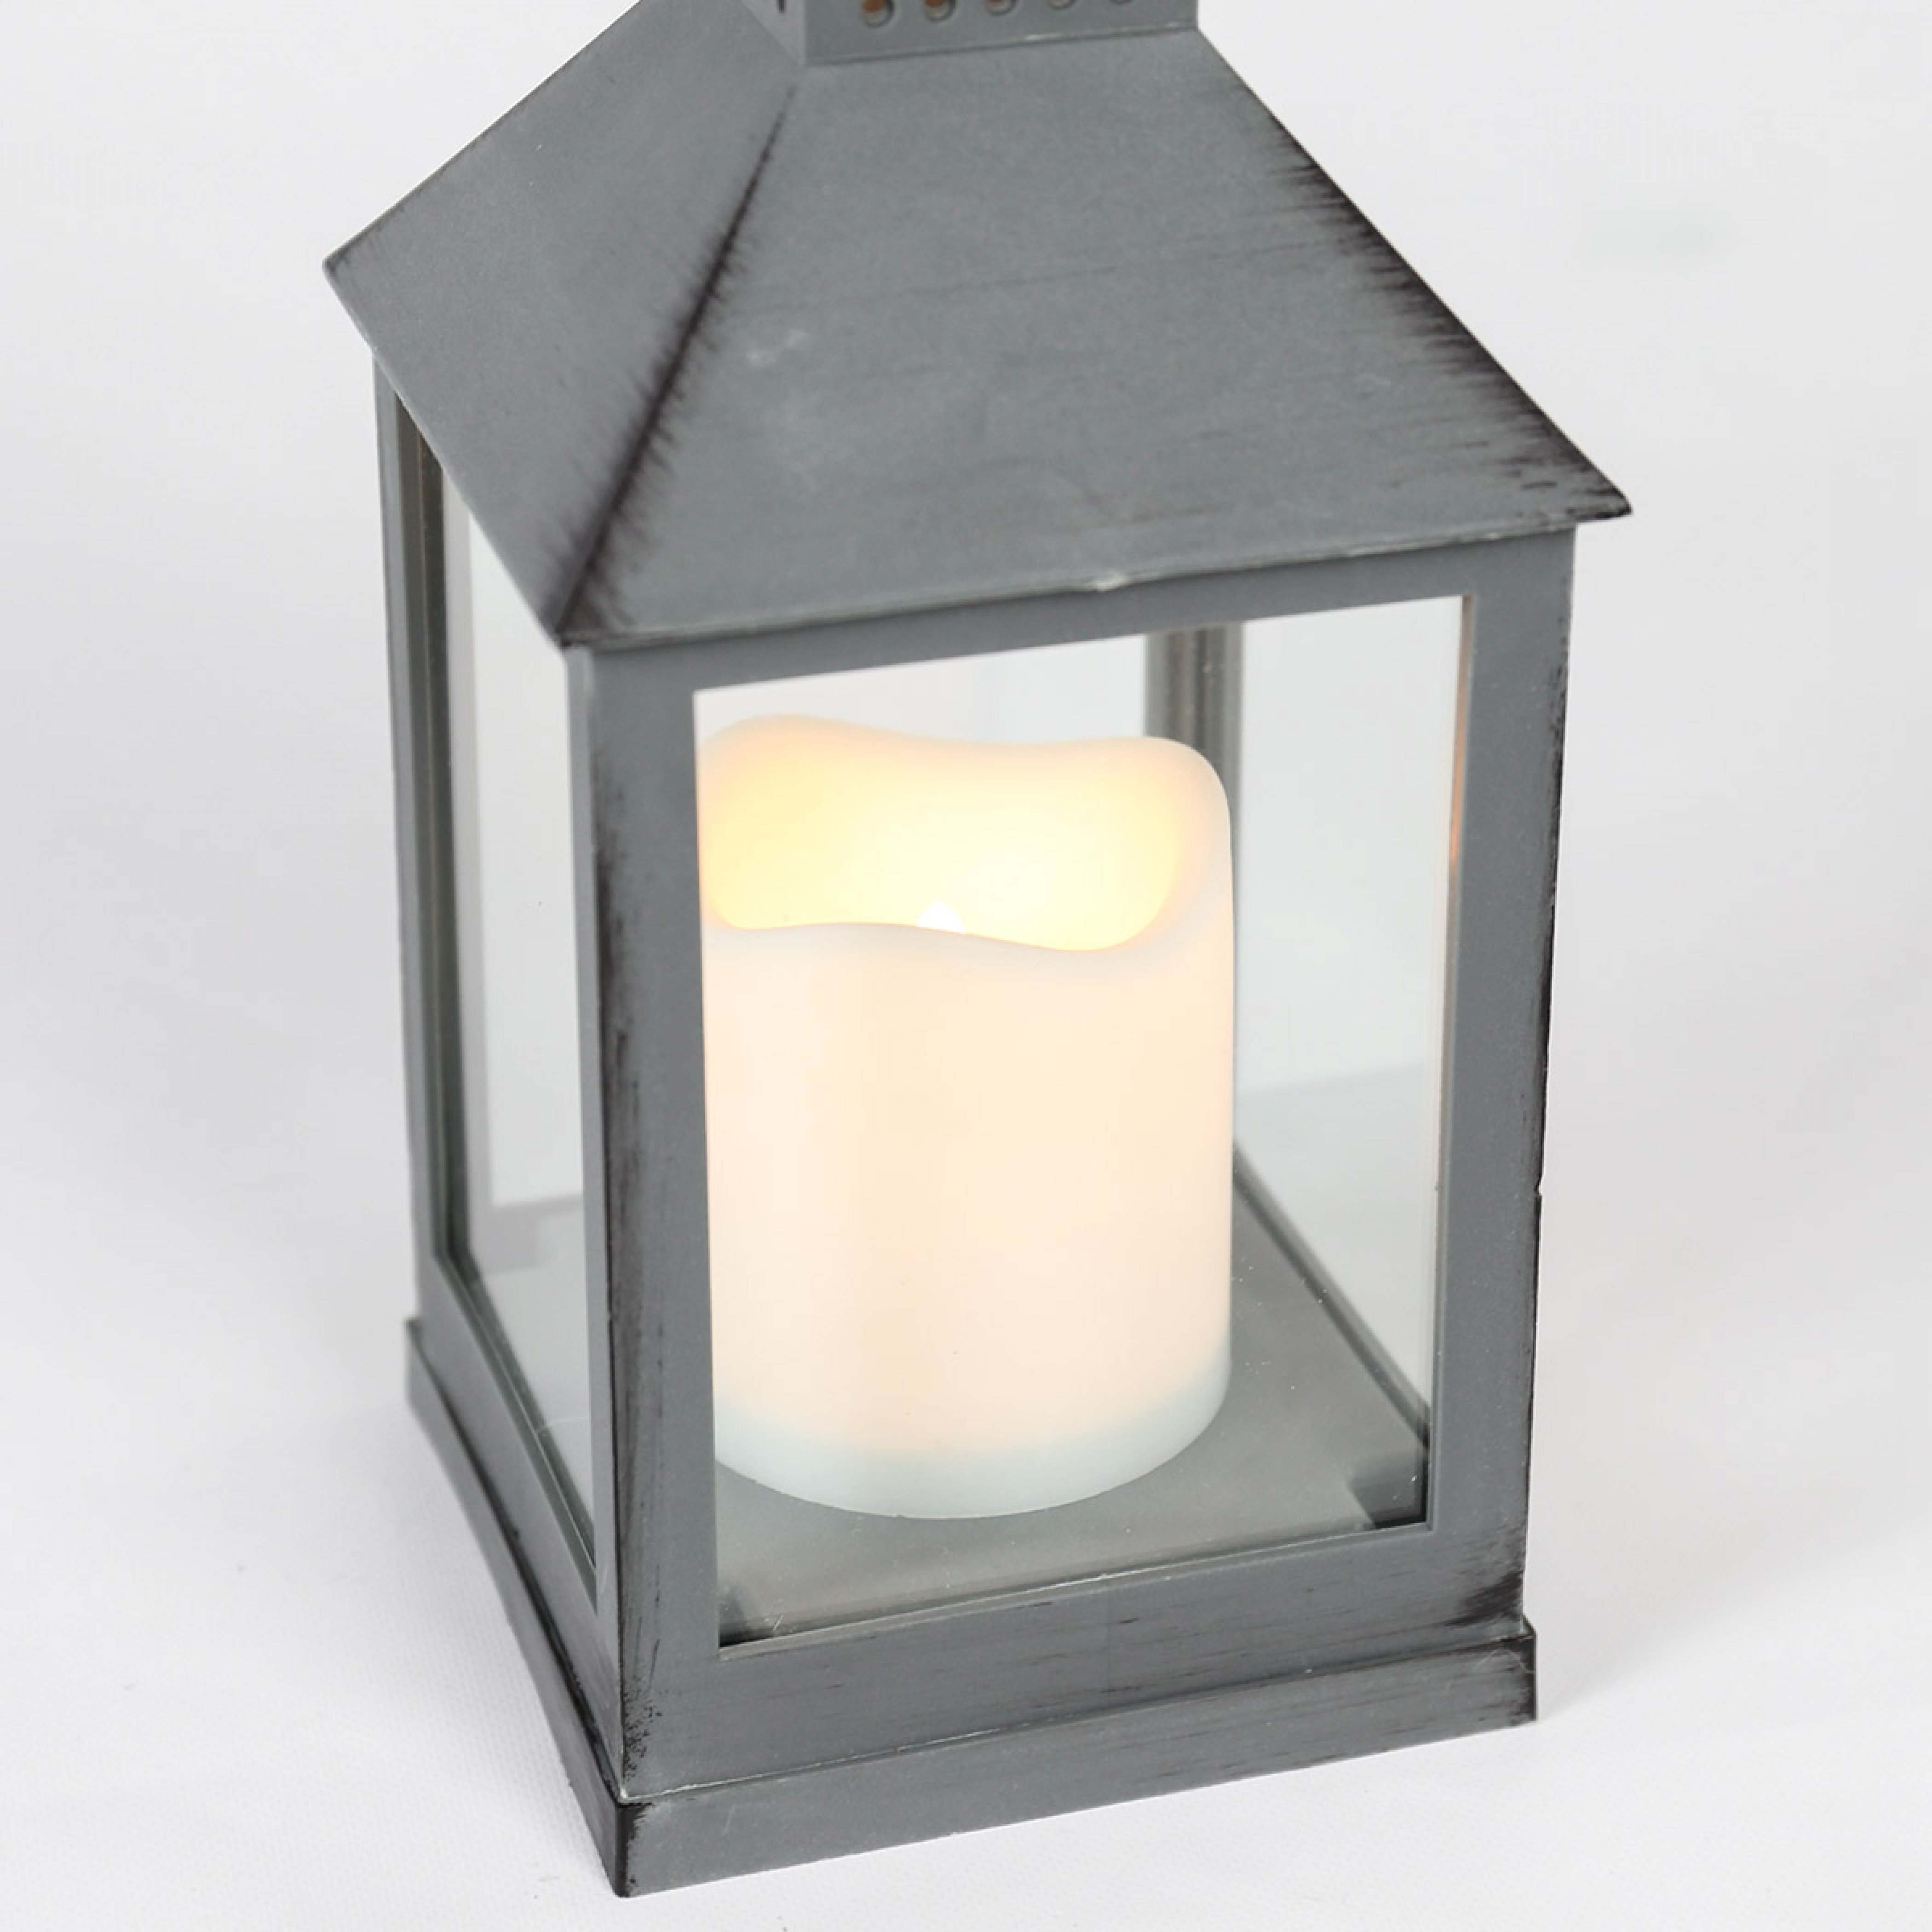 2019 Outdoor Grey Lanterns For Outdoor Battery Flickering Candle Lantern, 24Cm (View 2 of 20)